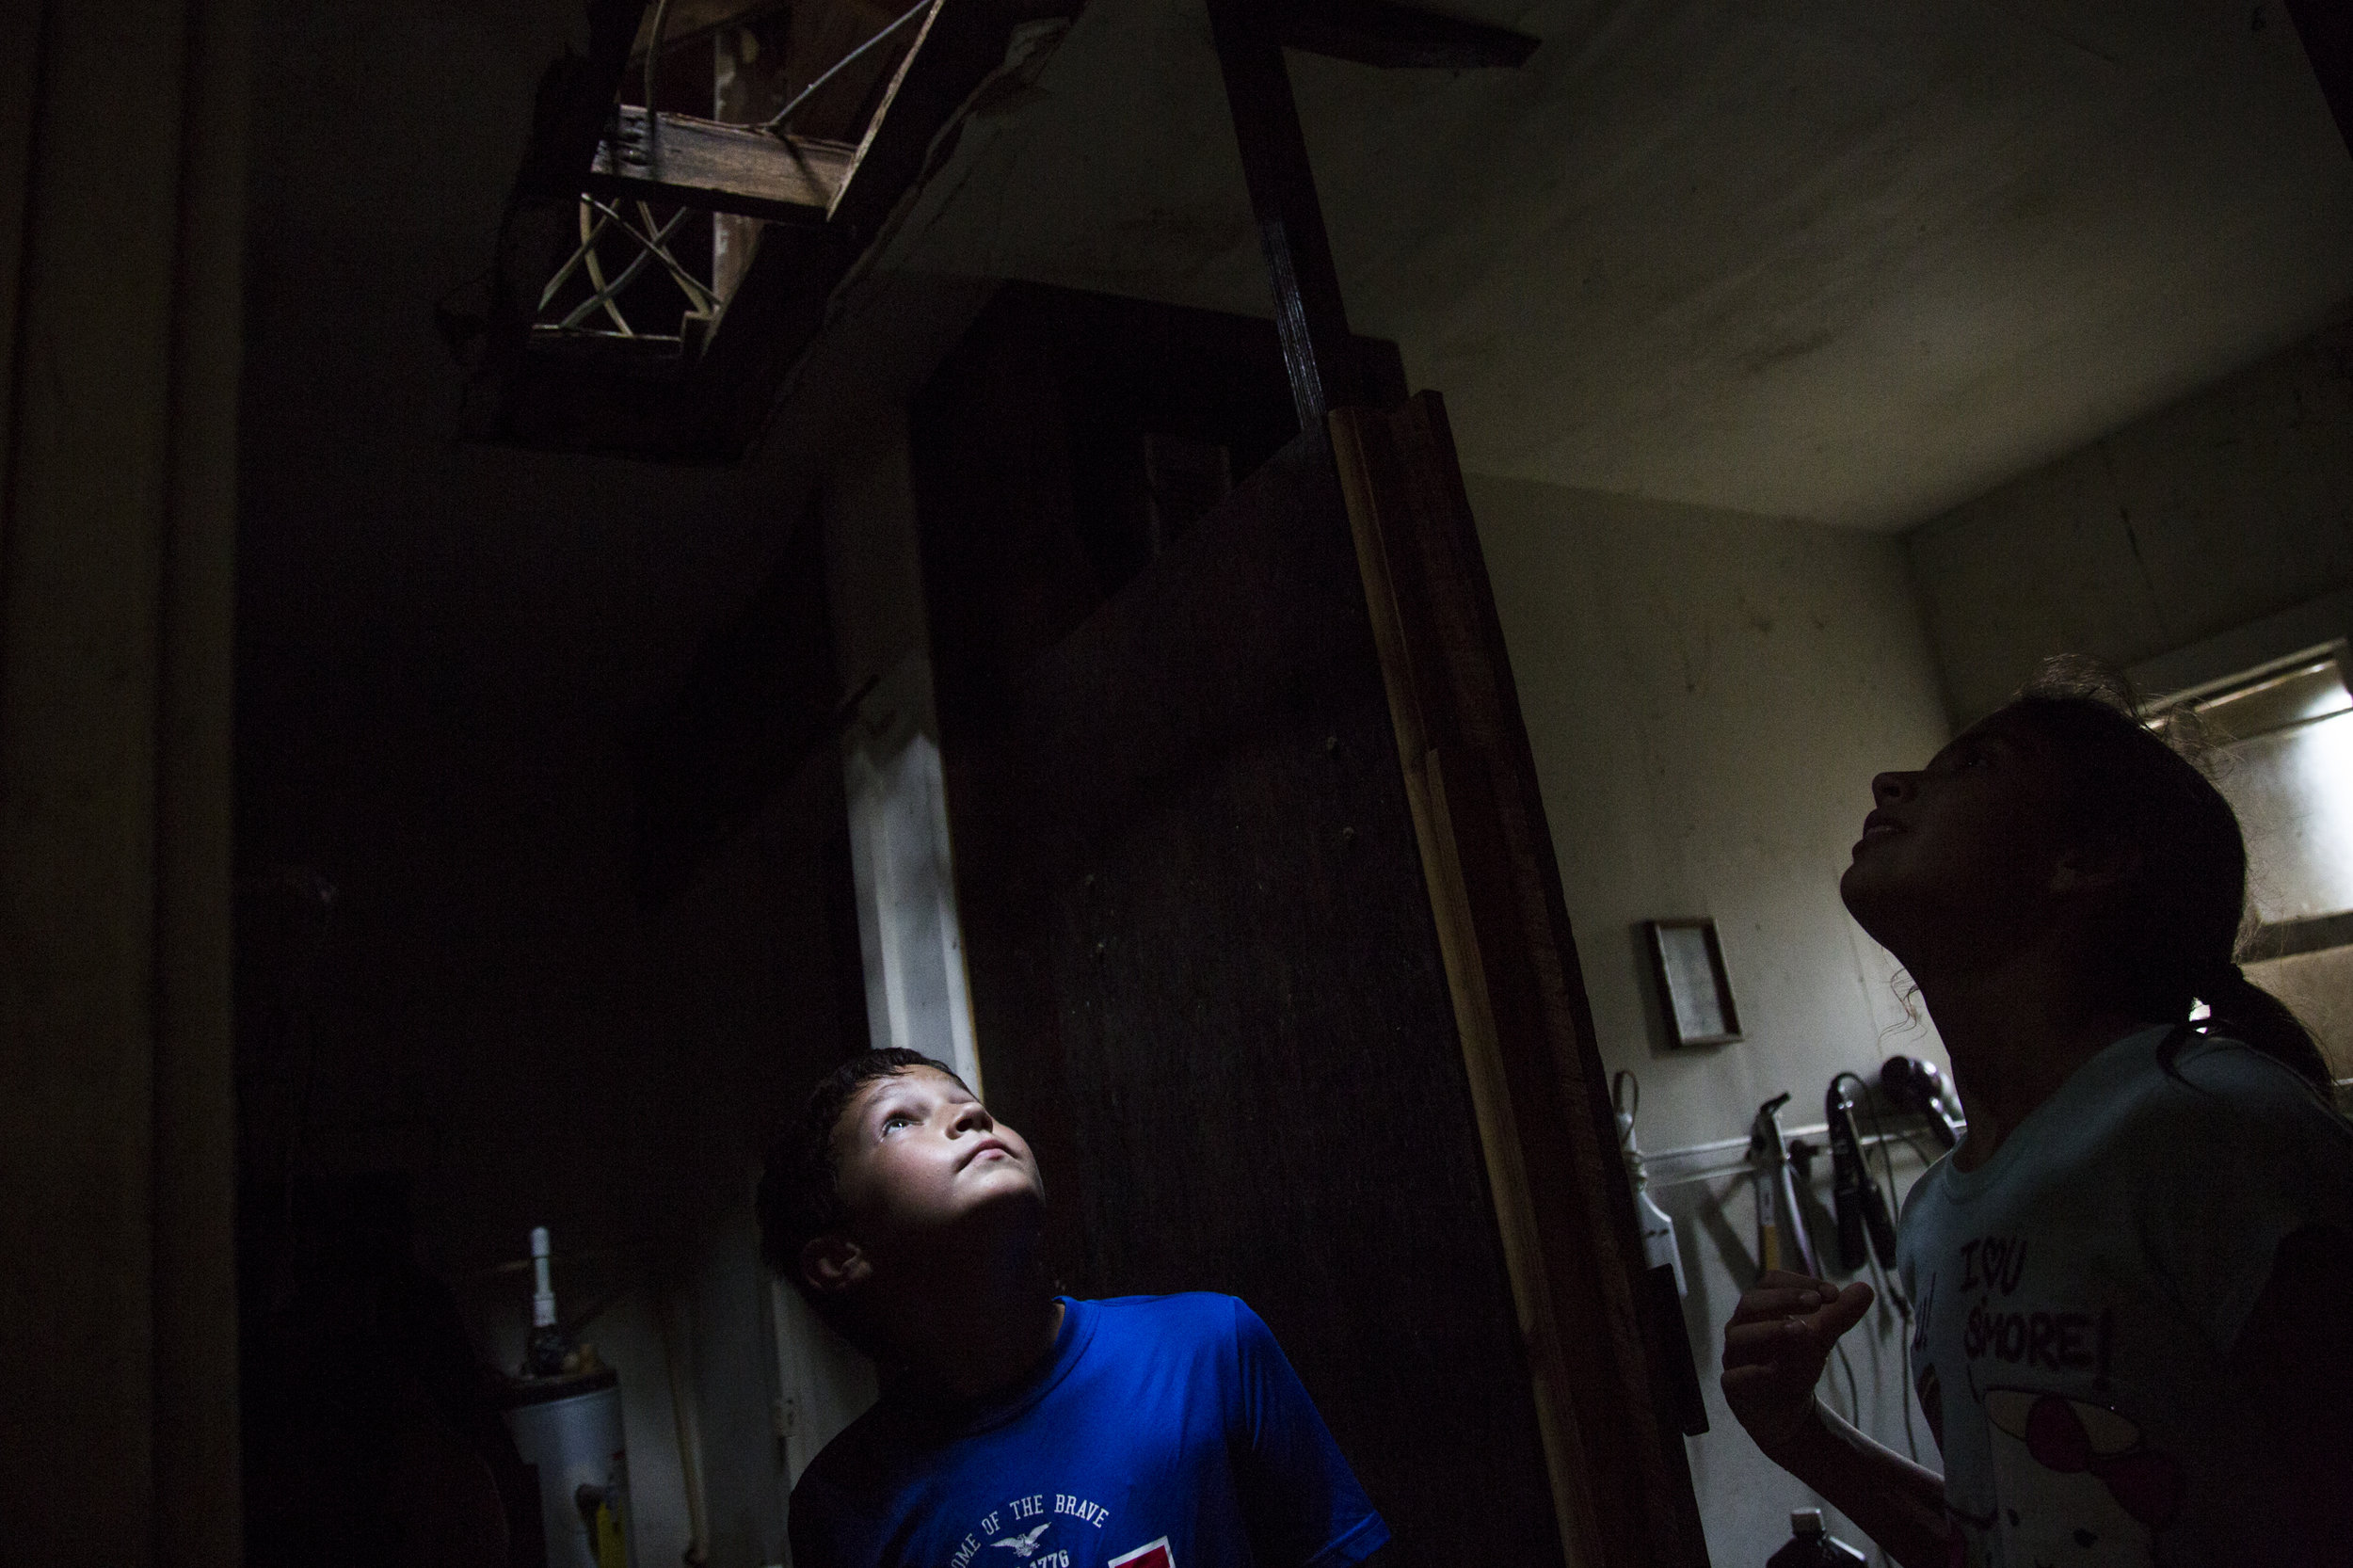 Kyler Carpenter, 10, left, and Laela Carpenter, 11, look up through a hole that was torn in their roof by Hurricane Harvey. The cousins surveyed the damage Sunday to Laela's family home in Bayside, Texas.